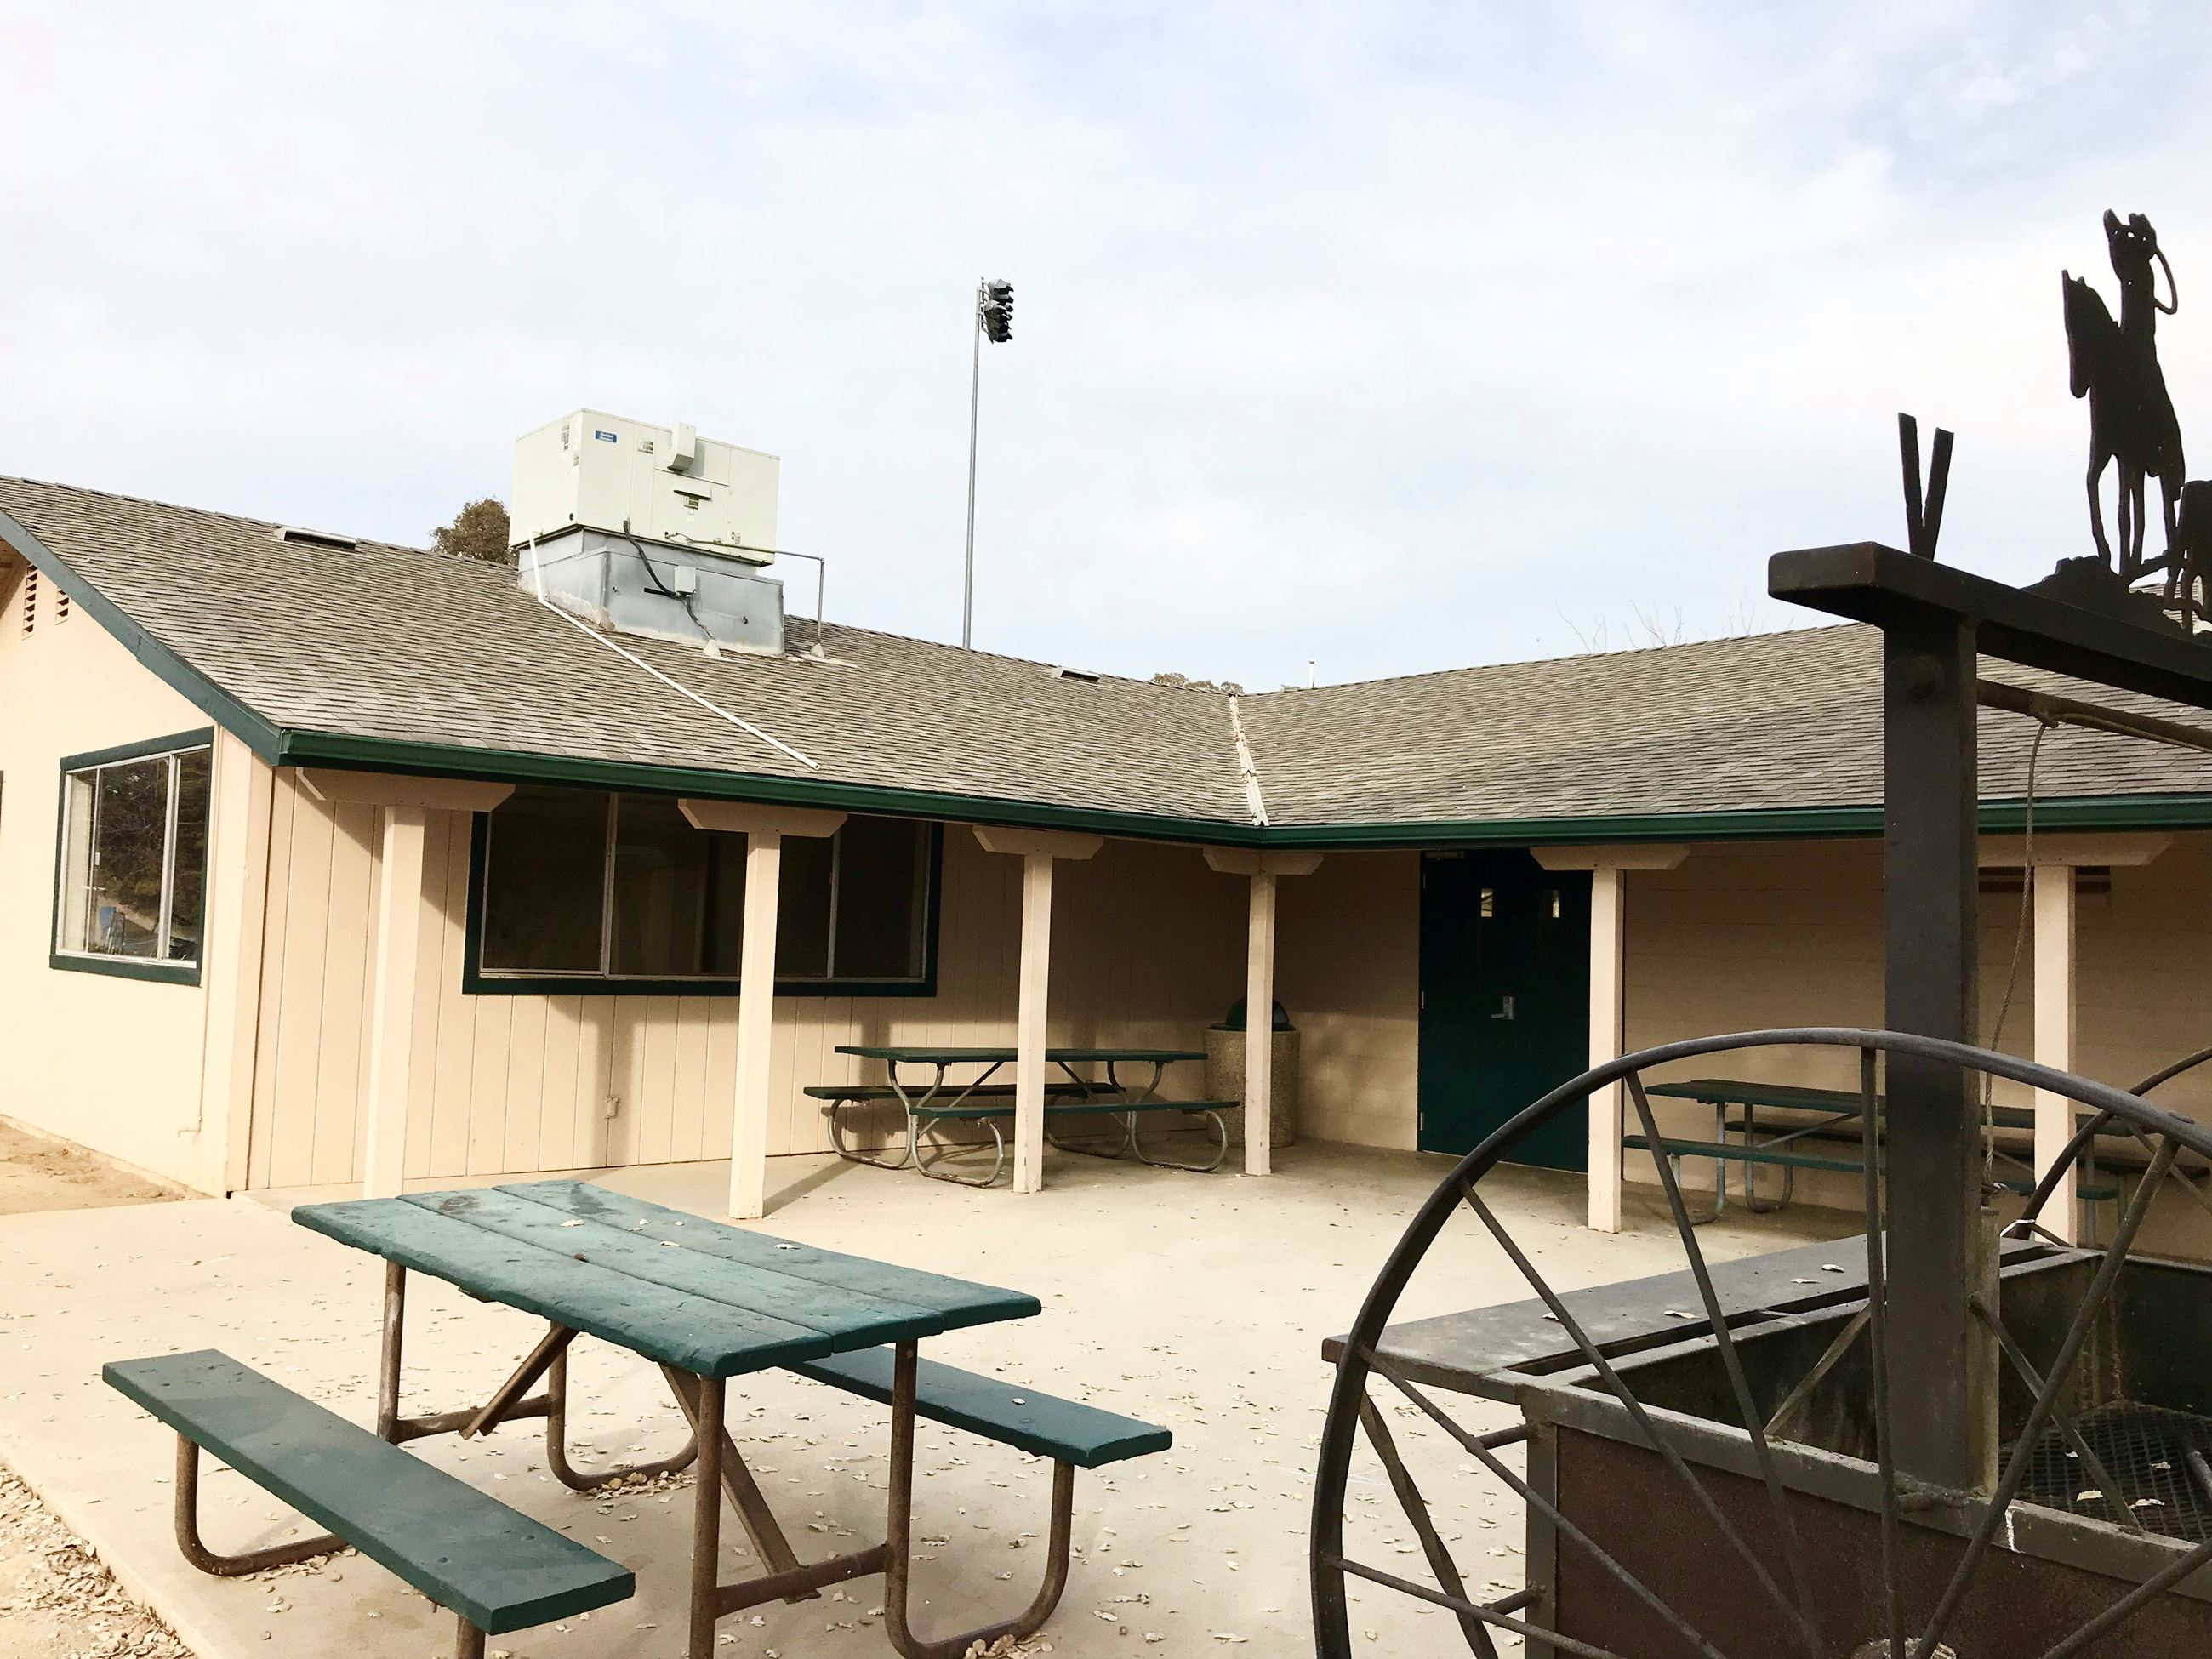 Photograph of exterior patio at McCay Hall in Catheys Valley, California